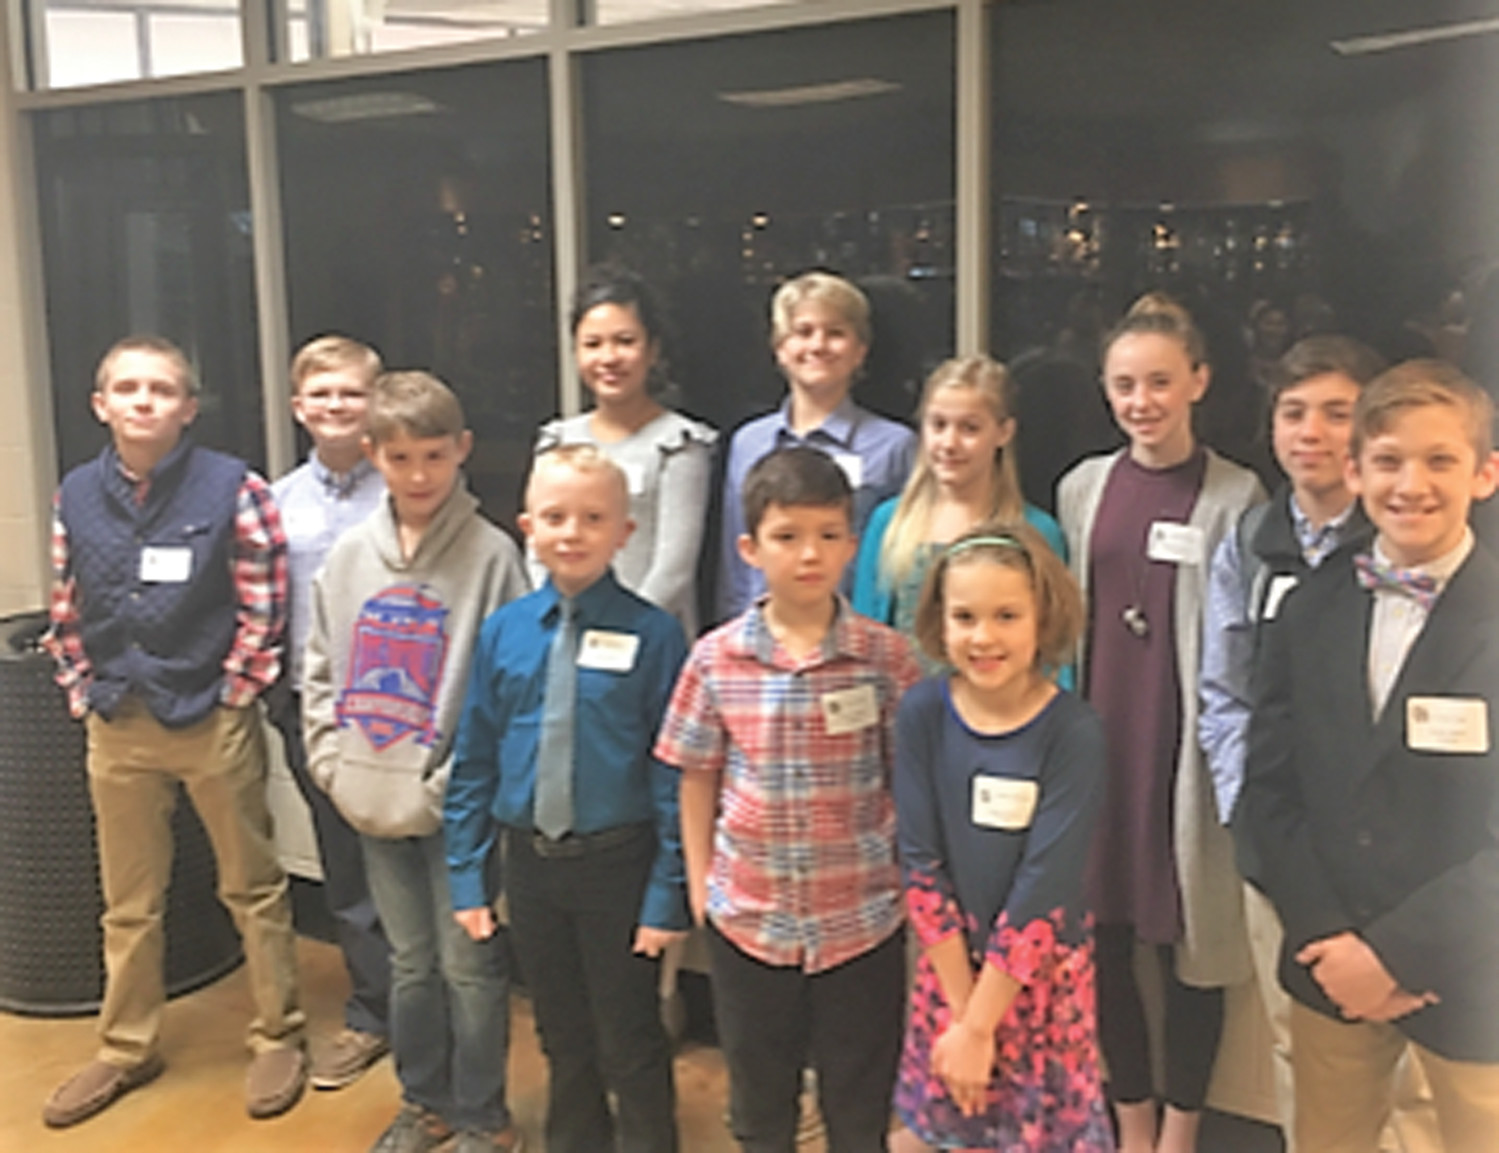 Thomas Sumter Academy participated in the recent South Carolina Independent School Association Regional Spelling Bee. TSA came in third place overall. Individual winners advancing to the State SCISA Spelling Bee on Feb. 21 include: Madison Marrow (third grade); Tyler Walton (fifth grade); and Vaughn Nedderman (seventh grade).